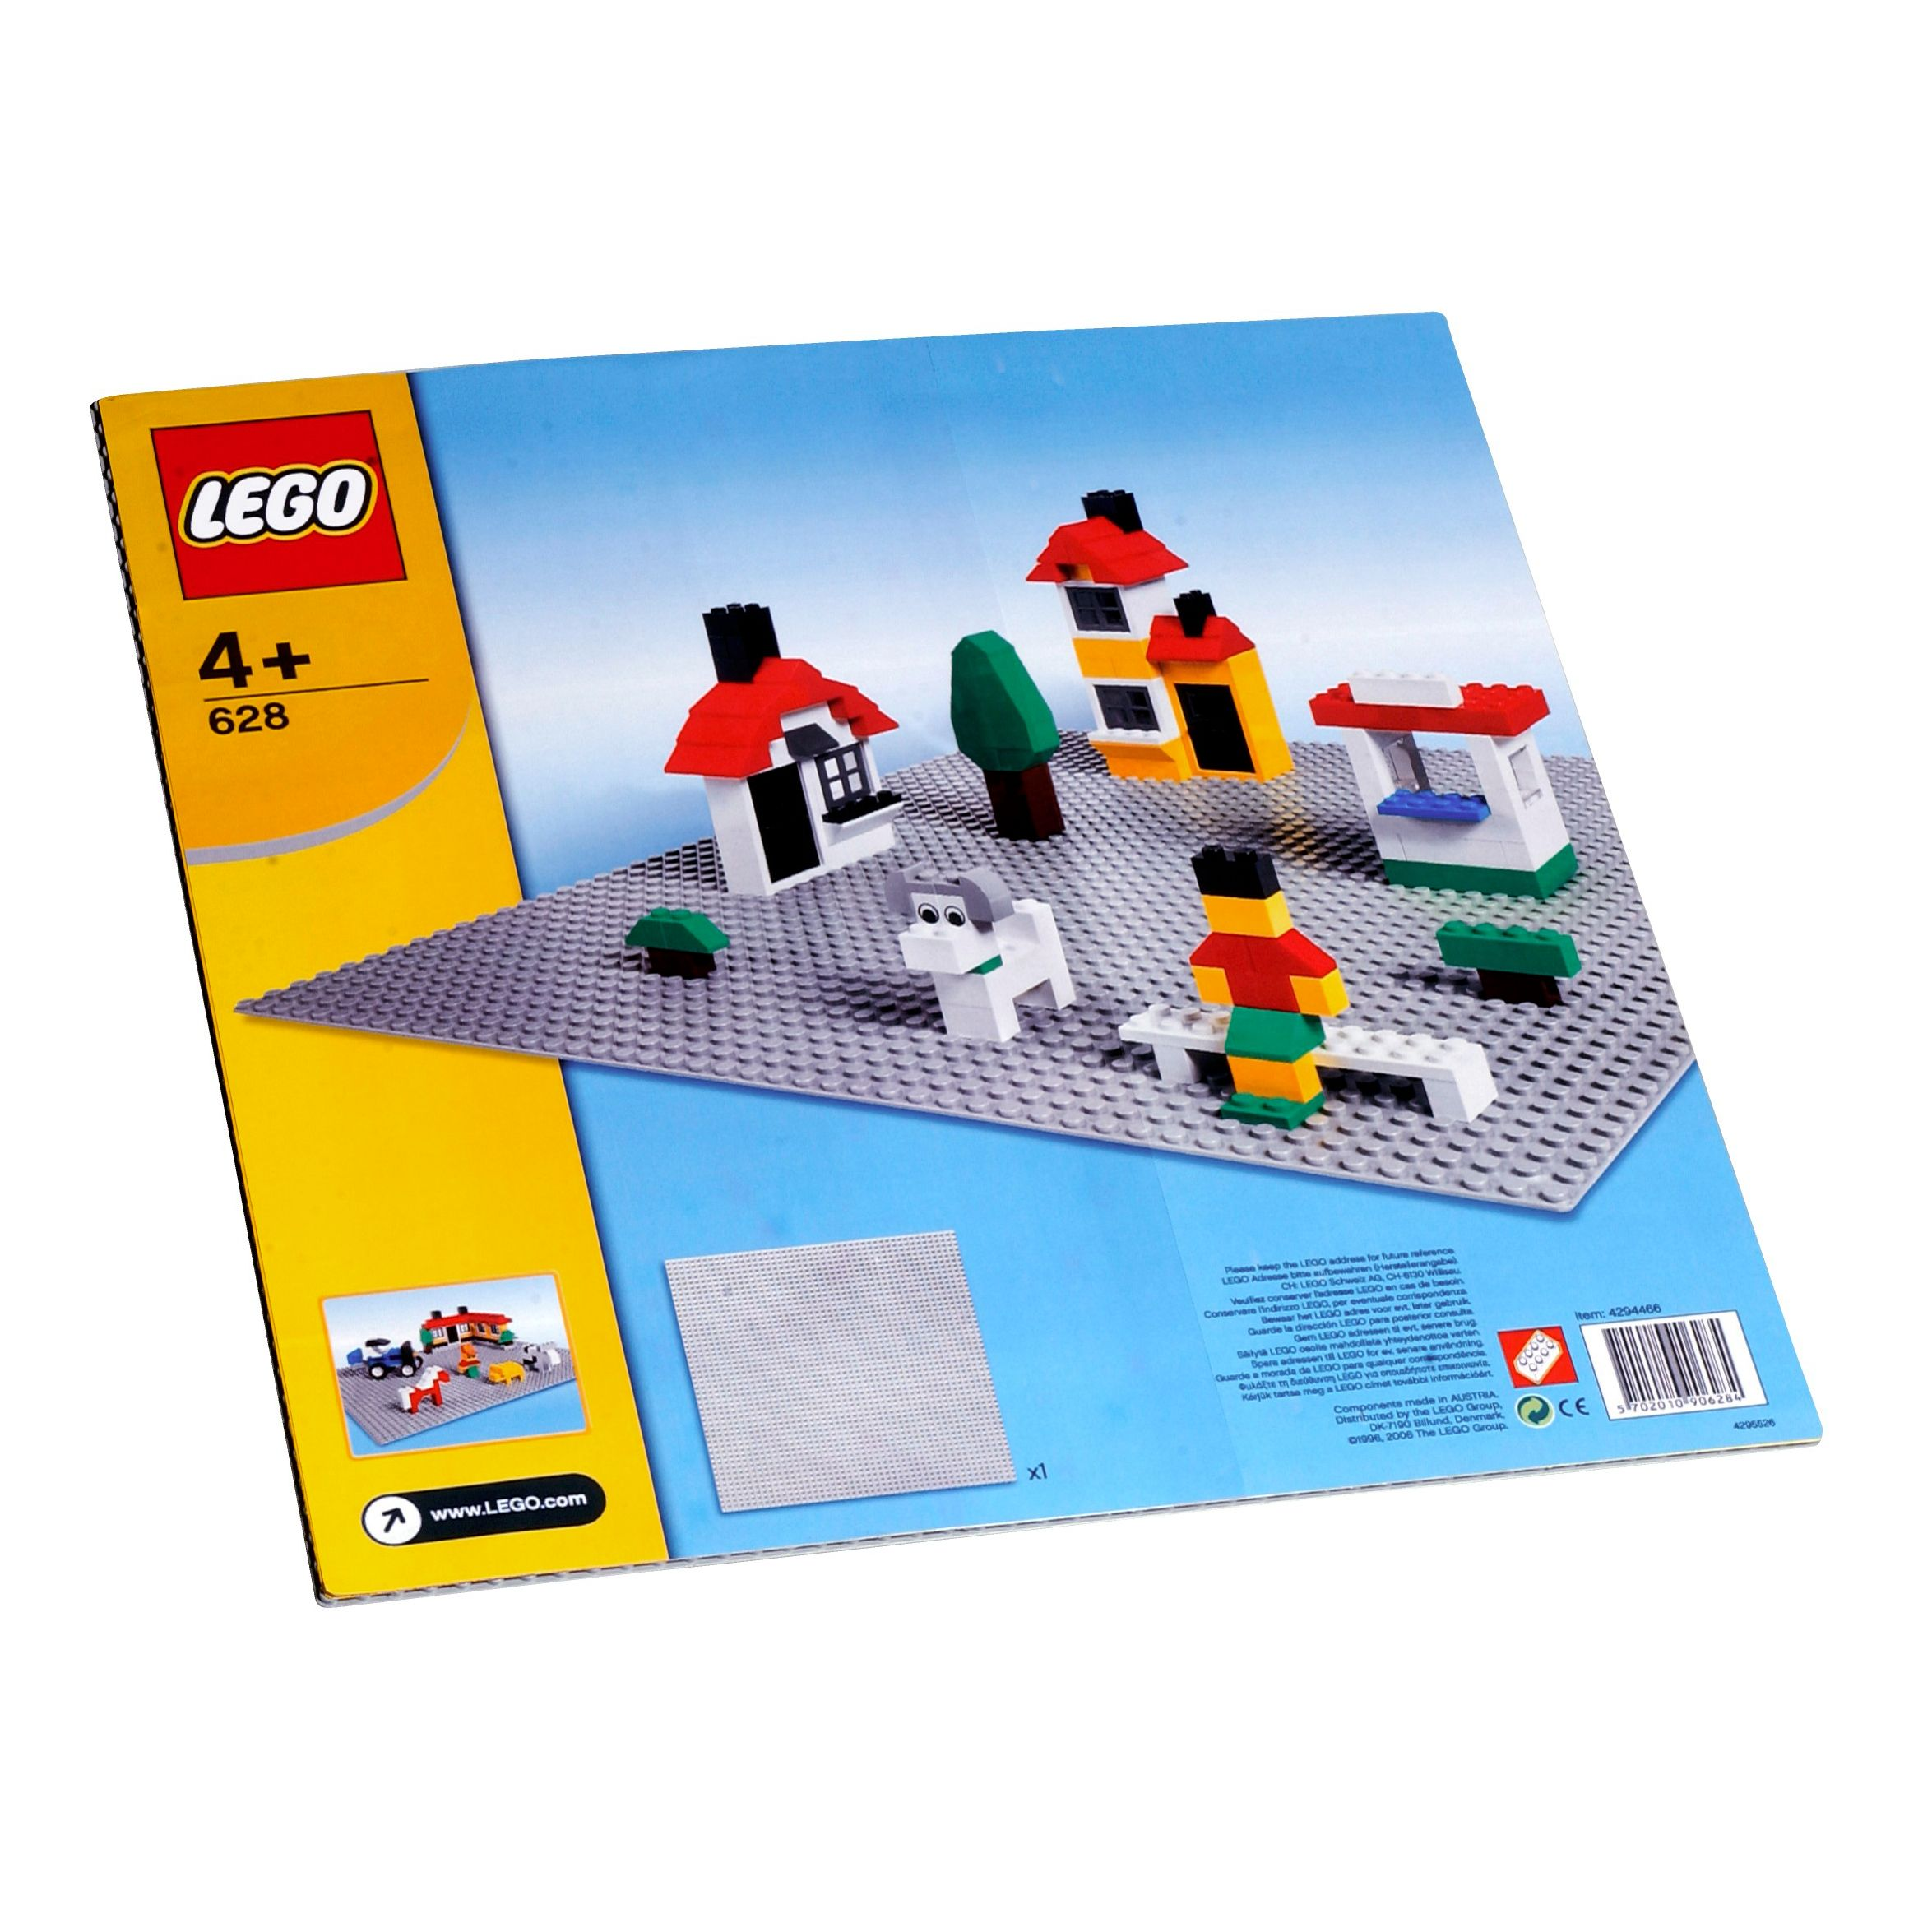 Lego Building Plate, Grey